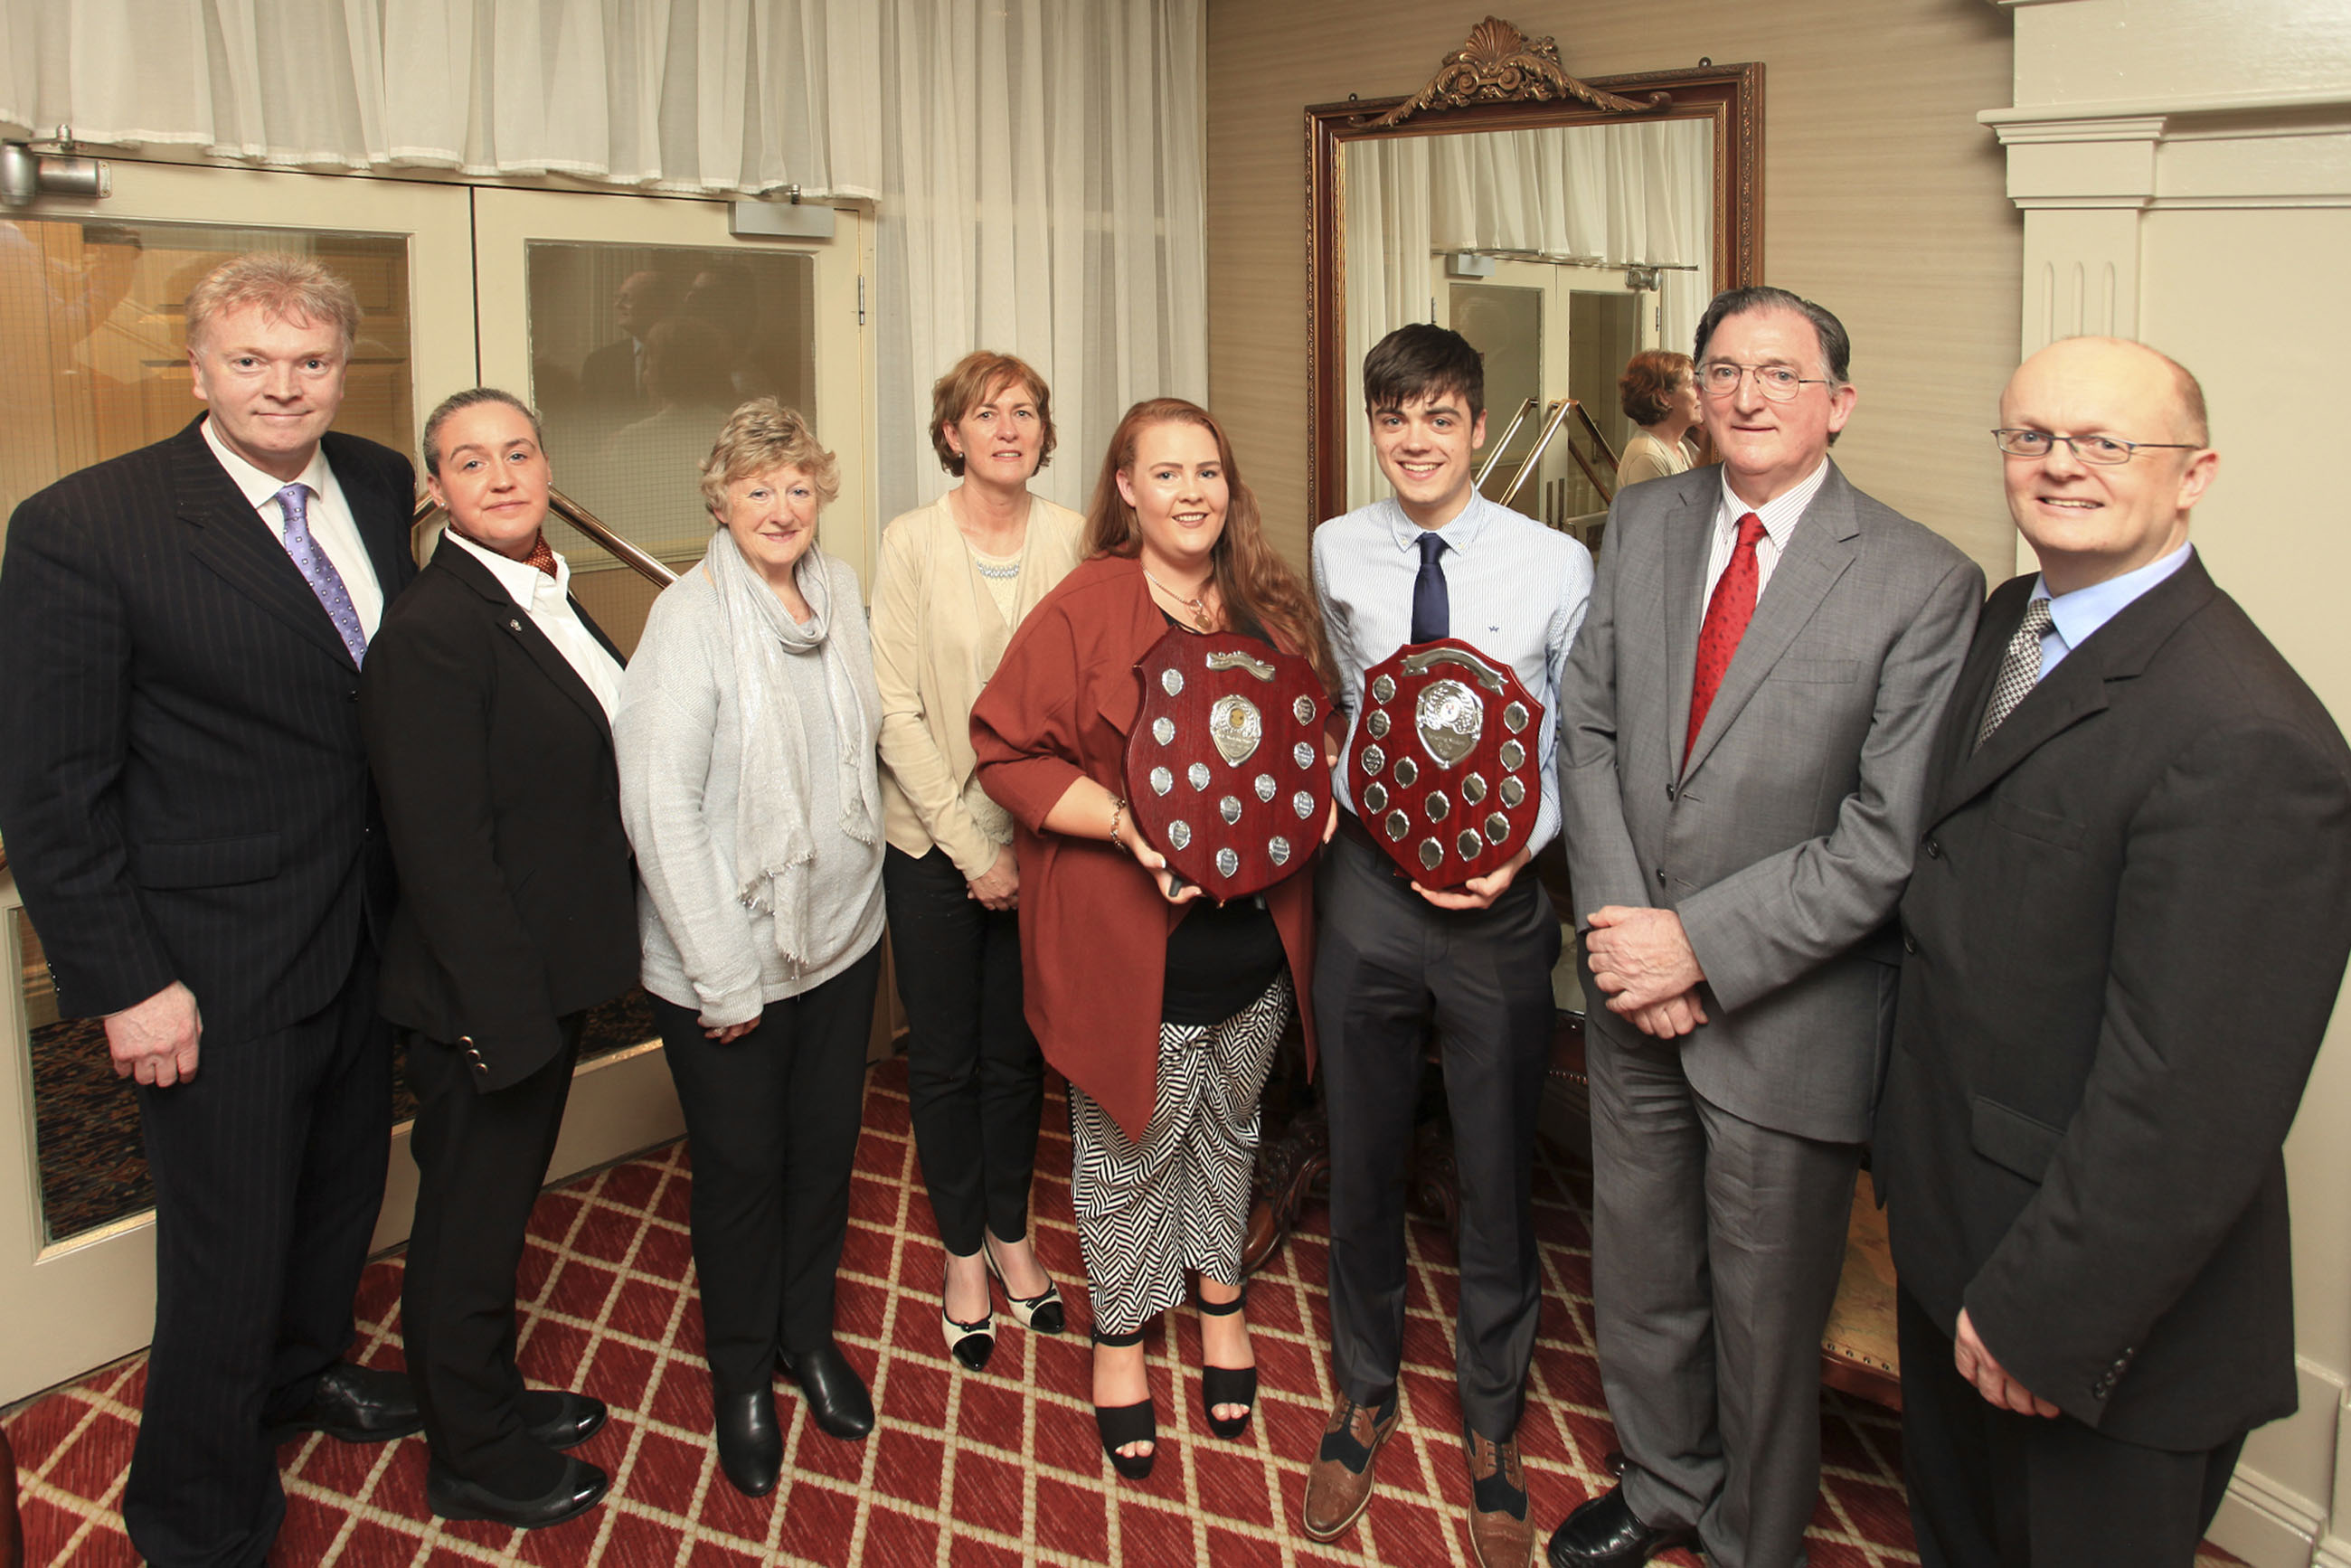 Pictured from left are WIT lecturer Denis Harris, Granville Hotel proprietors Jackie Cusack, Ann Cusack, WIT Head of Department of Management and Organisation Joan McDonald, winners Neasa O'Brien and Dale Kervick, Liam Cusack of the Granville Hotel, Dr Tom O'Toole, Head of the School of Business at WIT